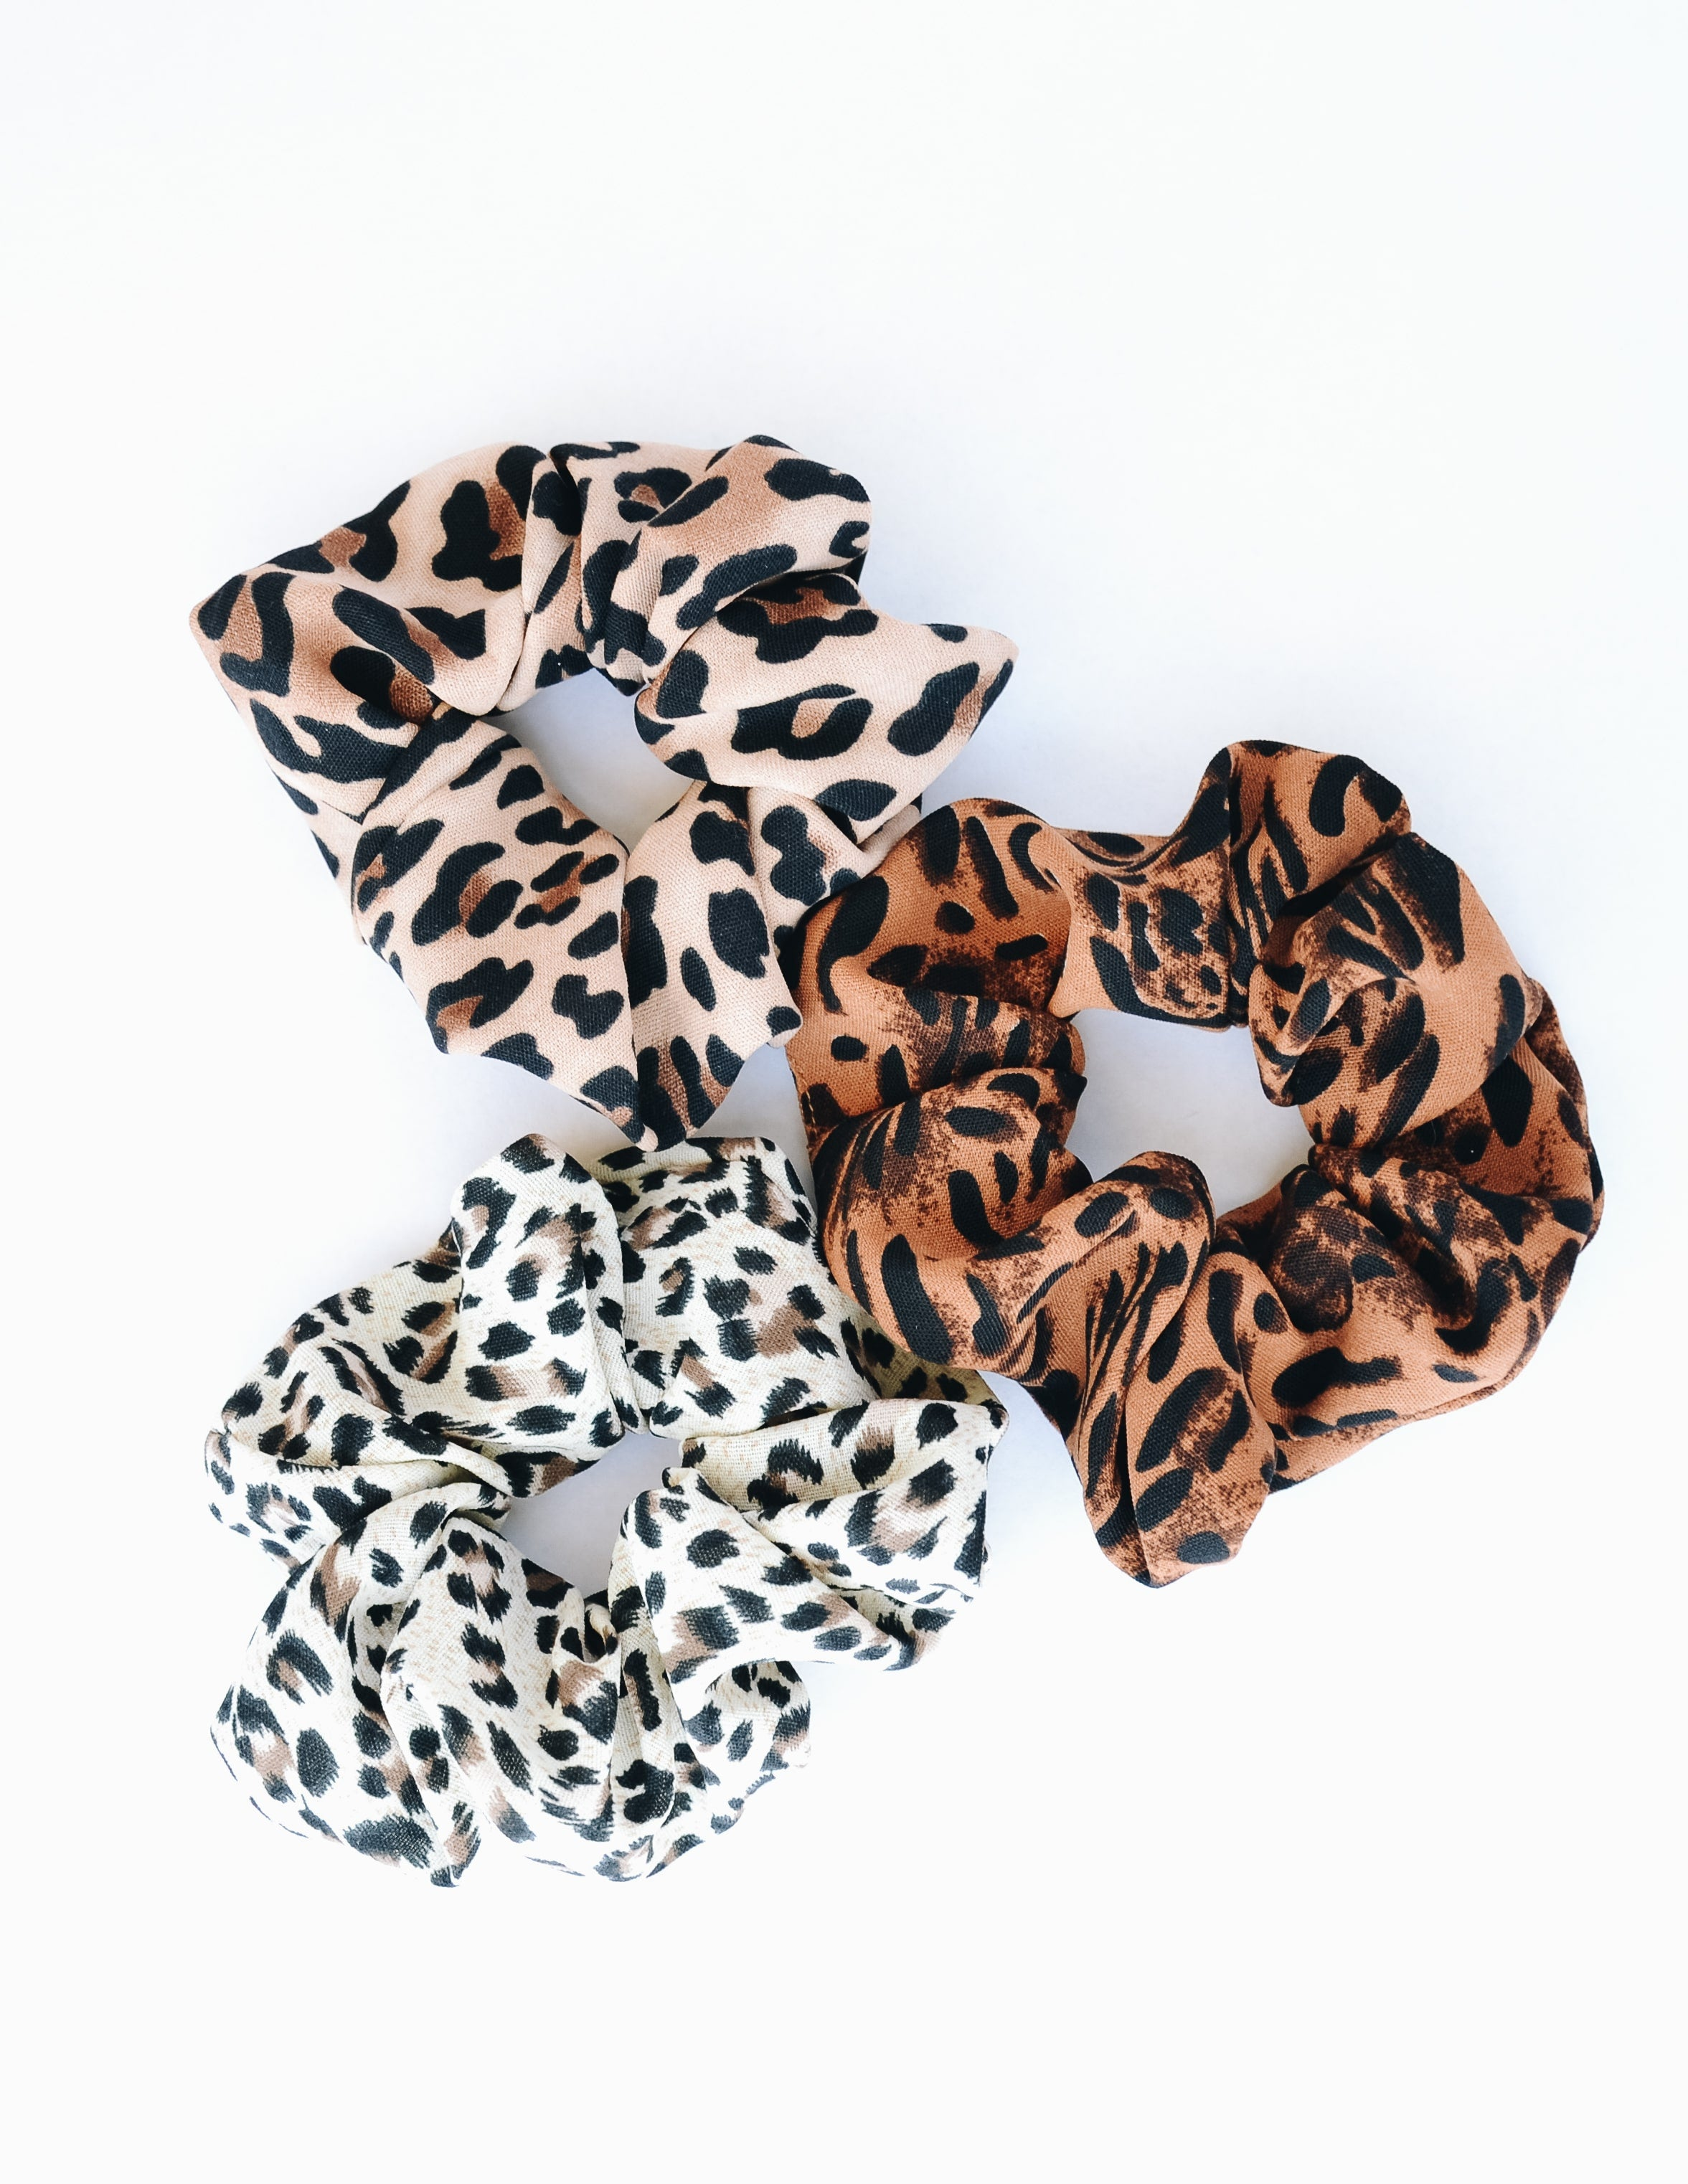 Cheetah print hair scrunchies on white background - elle bleu